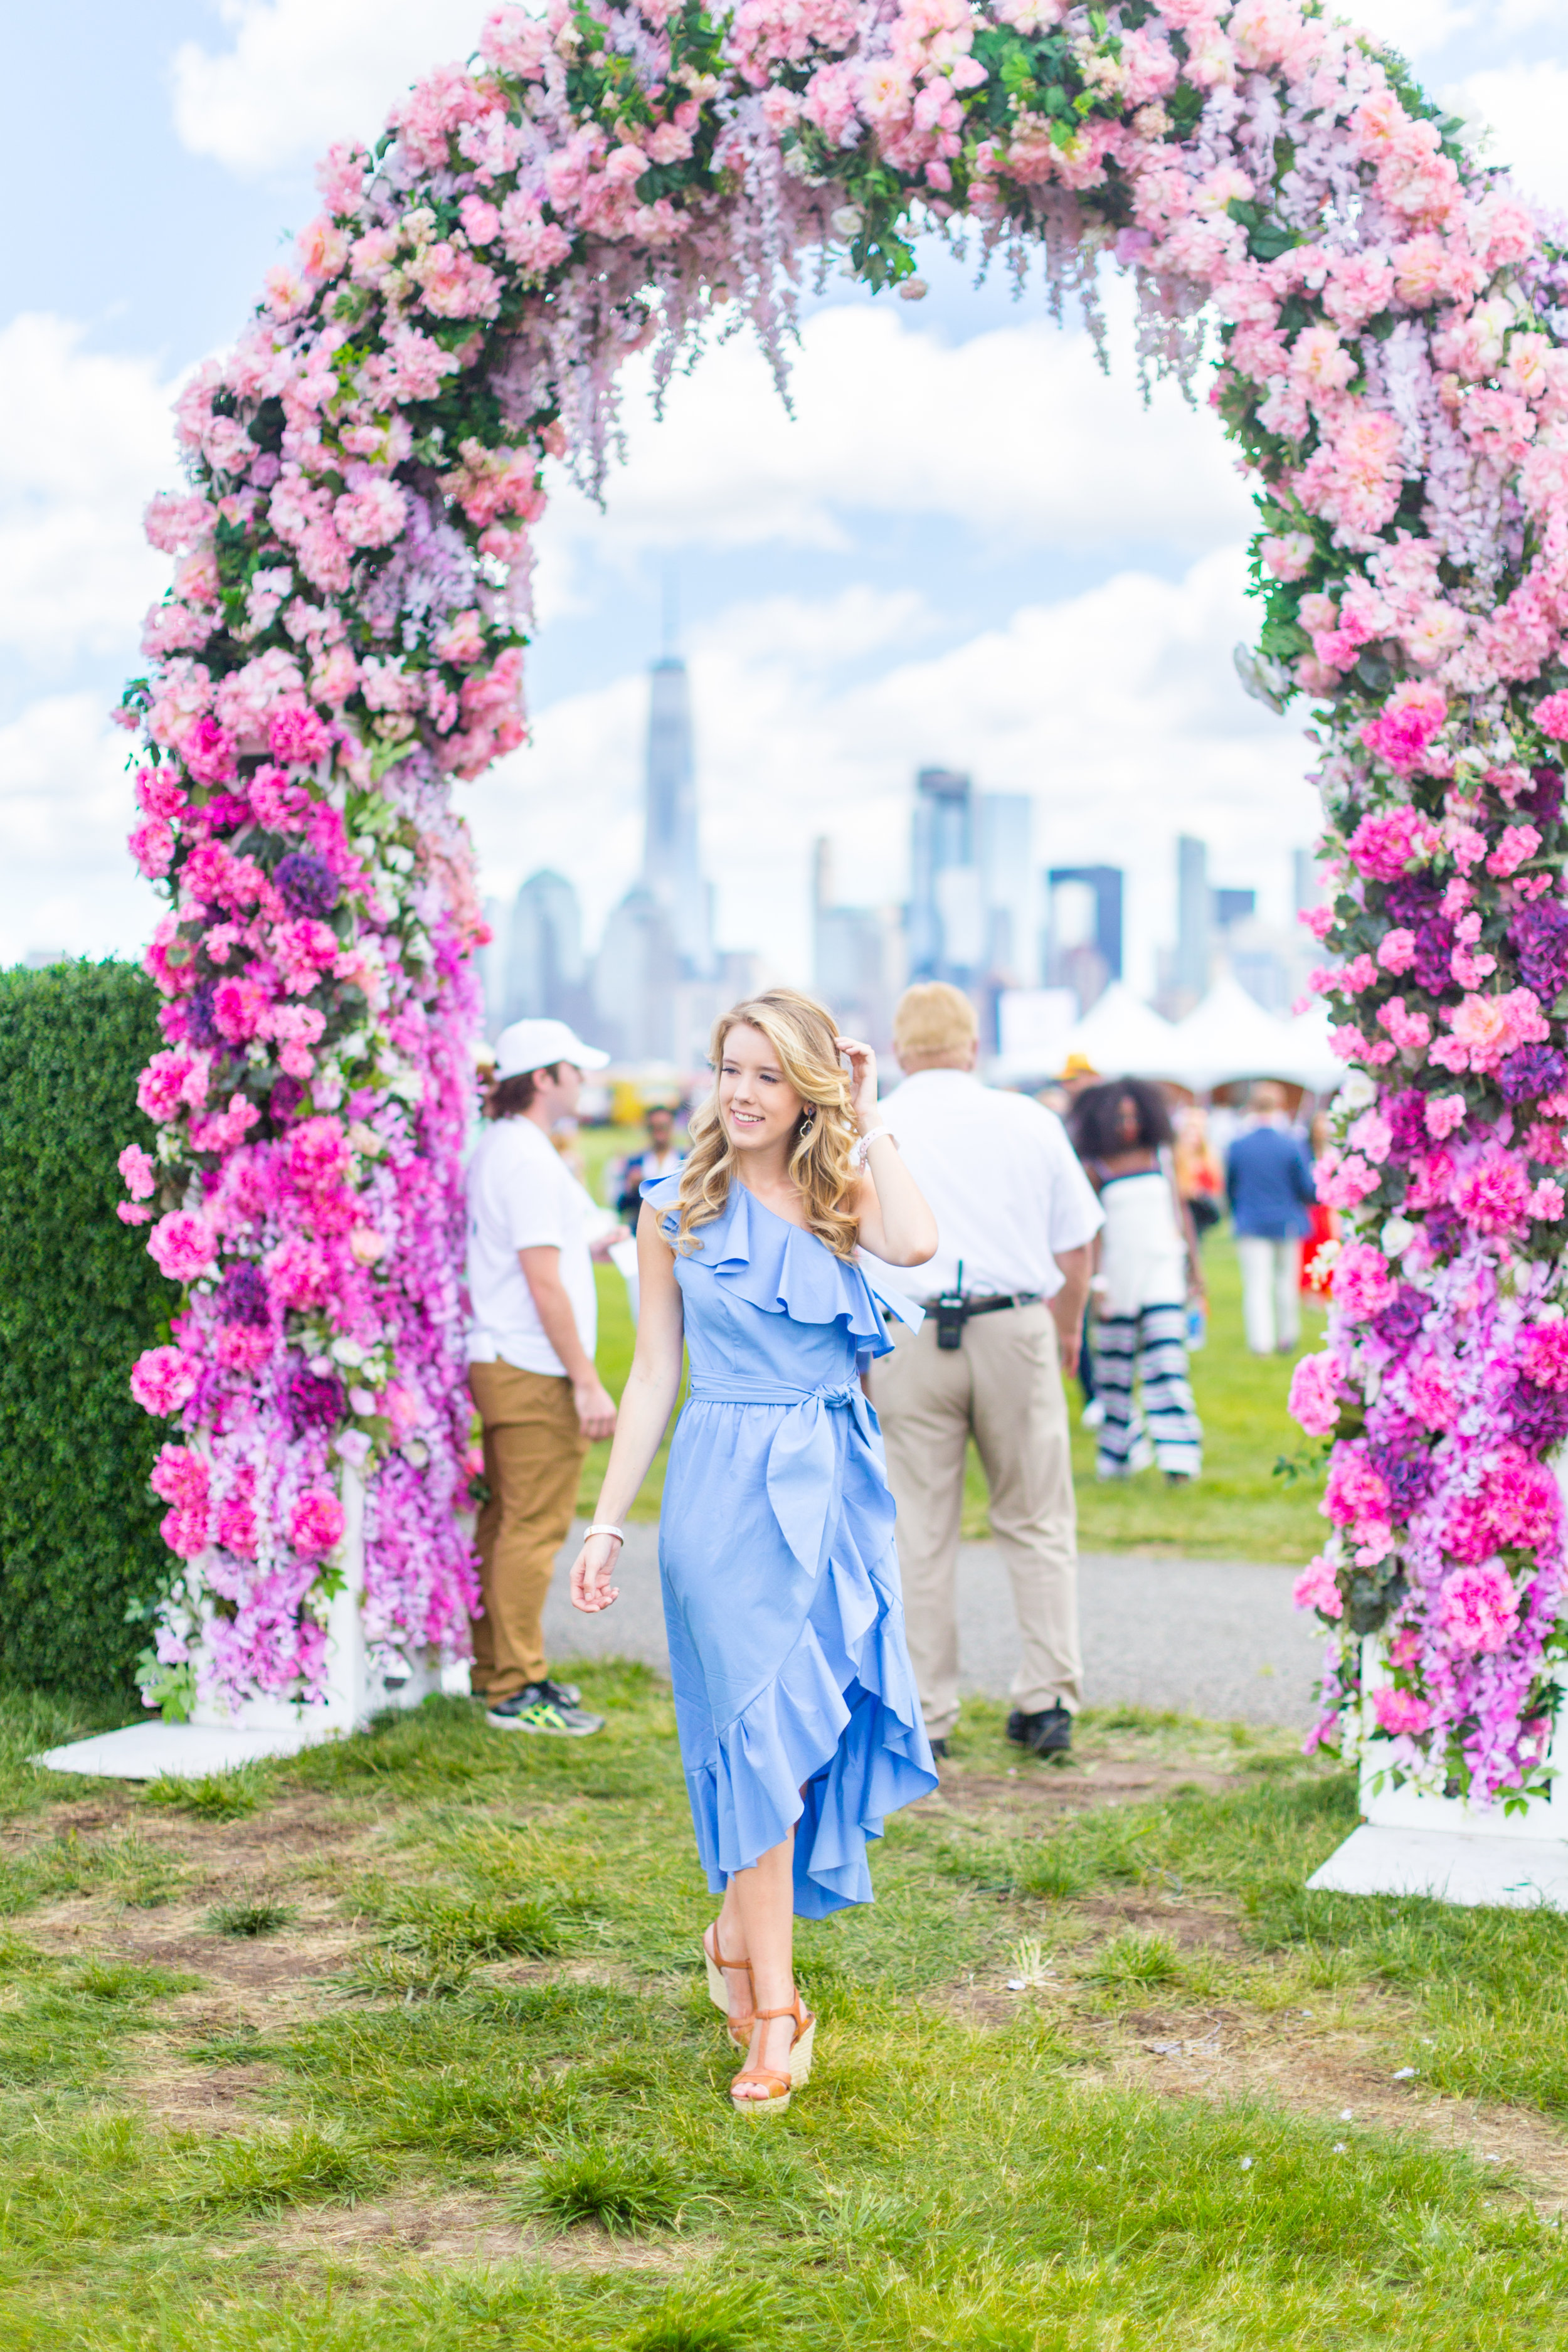 Veuve Clicquot Polo Classic NYC Summer Style Ruffled One Shoulder Blue Dress-3.jpg